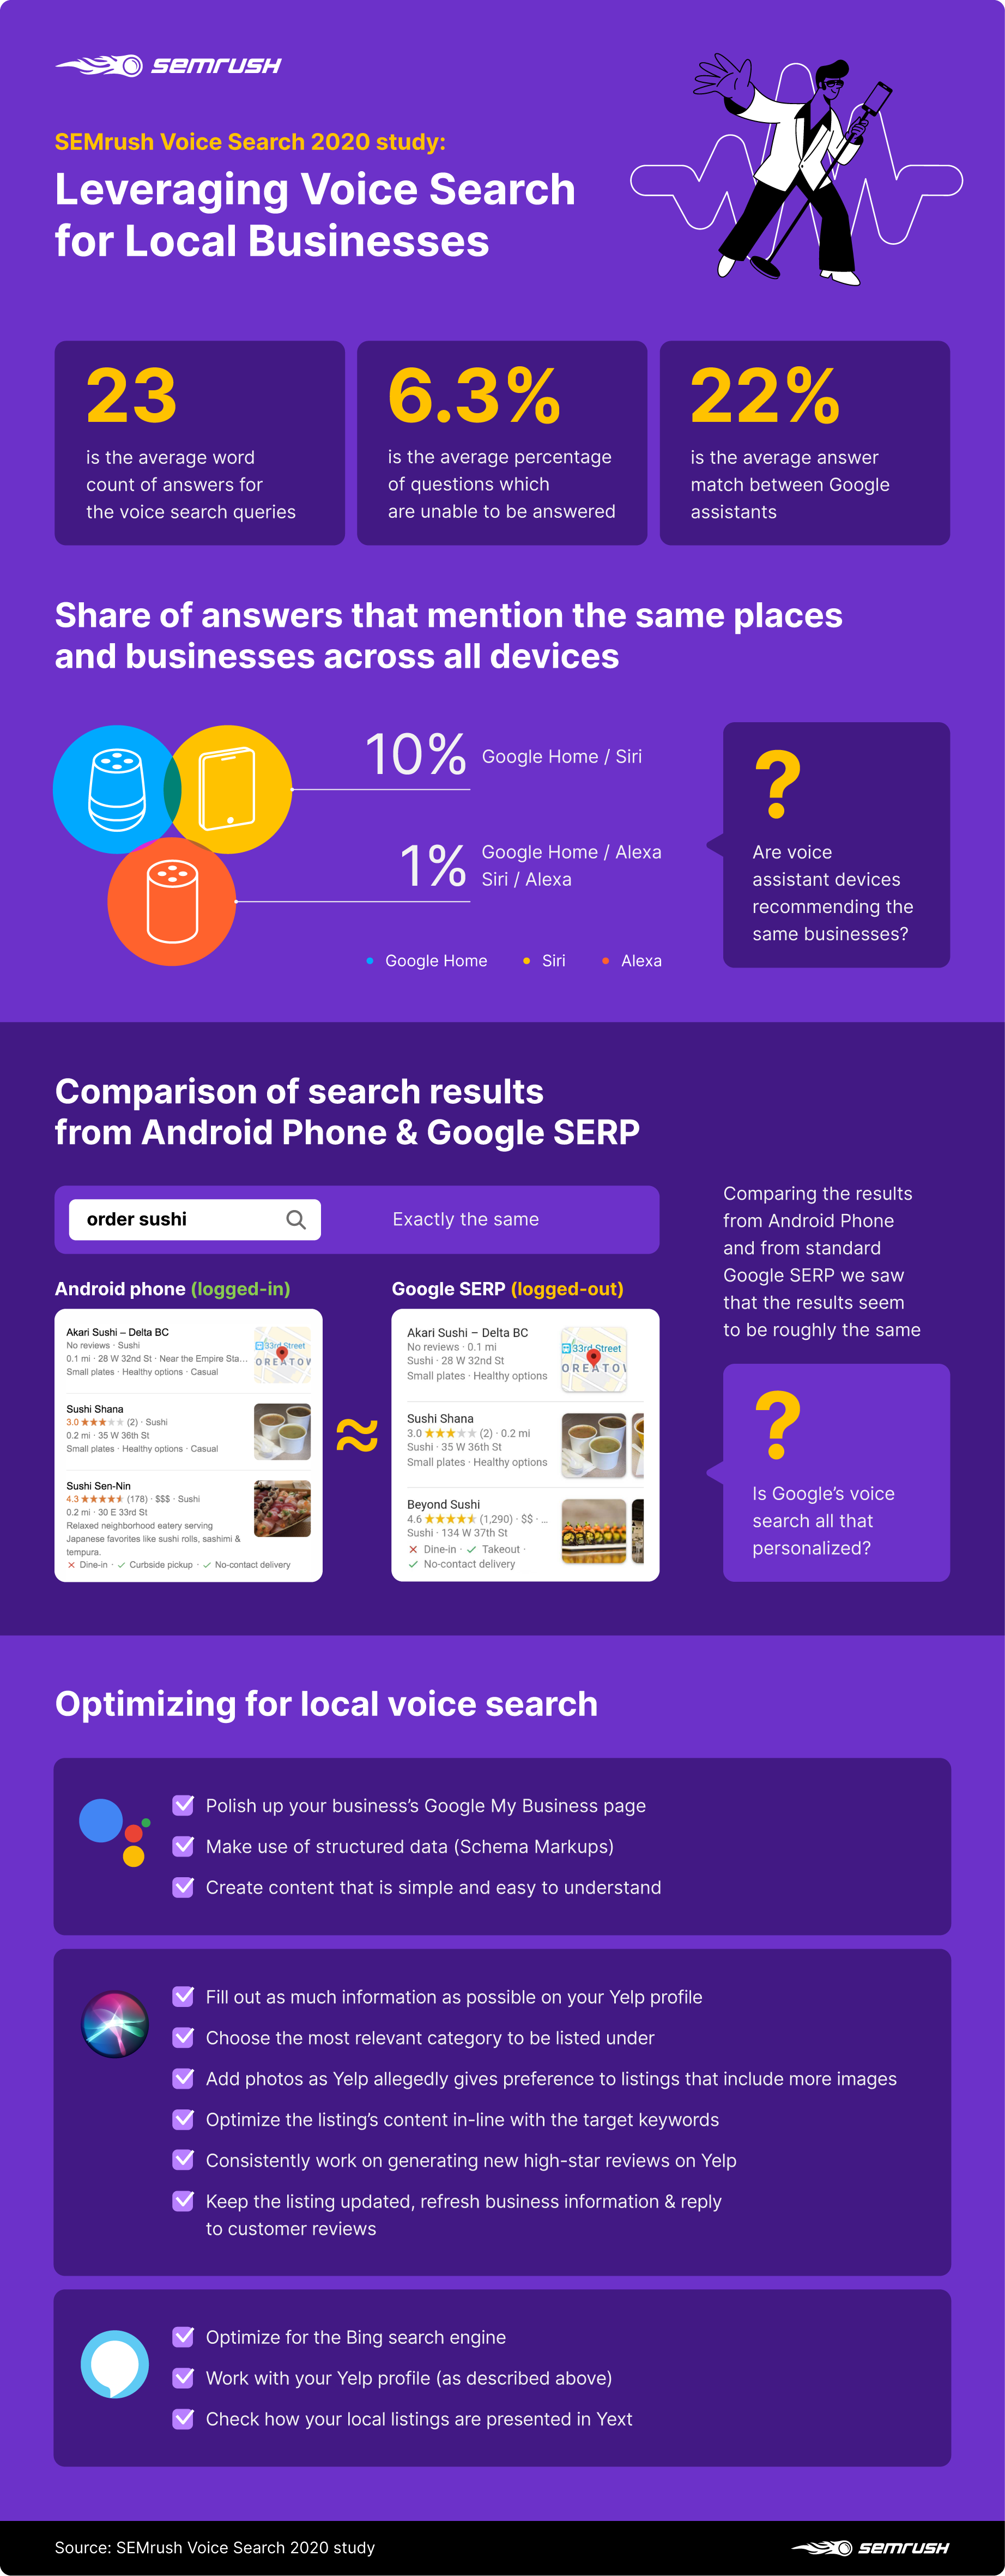 Key findings from SEMrush Voice Search 2020 study: Leveraging Voice Search for Local Businesses